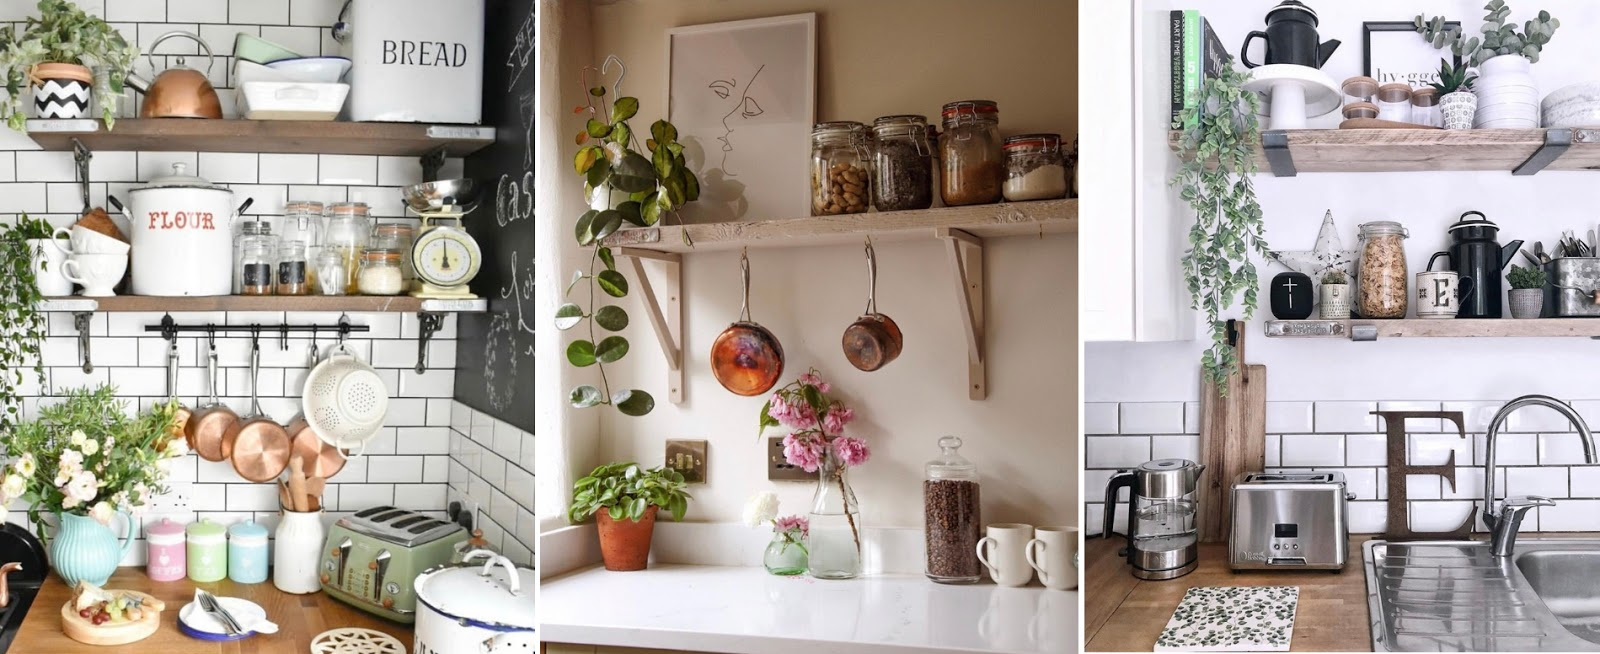 The must-have essential items and accessories you need to style kitchen scaffold board shelves in your home. Kitchen shelf styling tips for rustic, country cottage, vintage style interiors